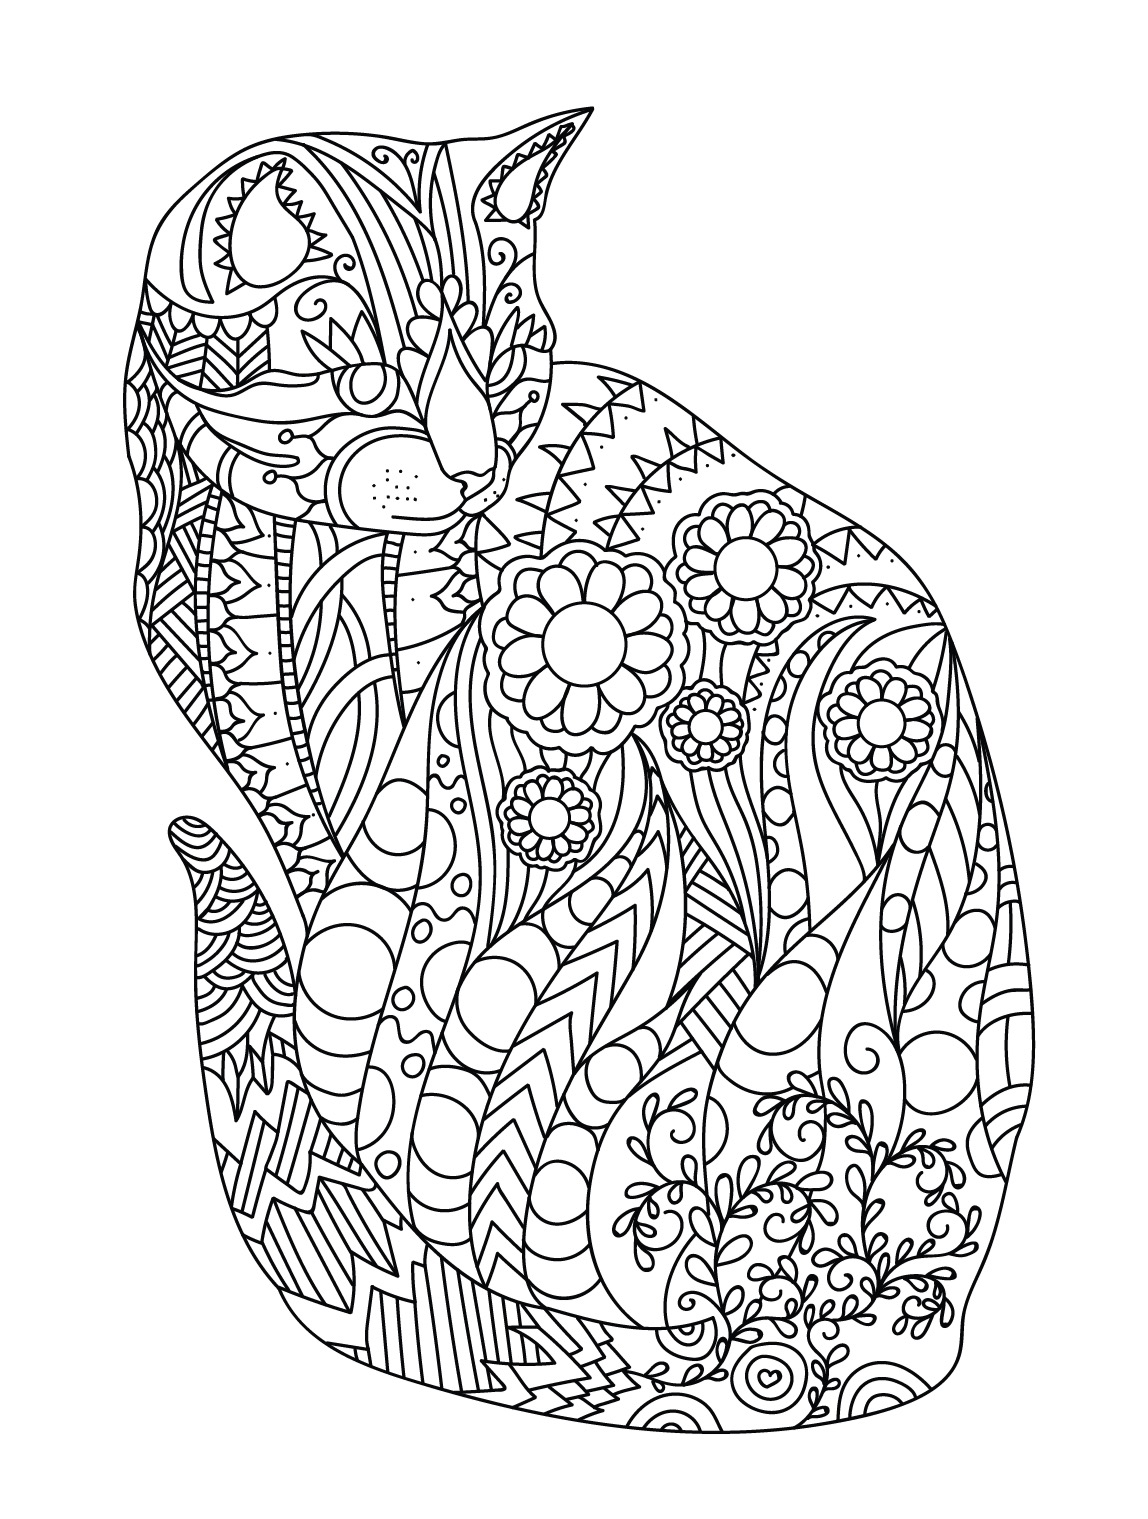 1148x1519 Nice Idea Cat Coloring Pages For Adults Colorish Book Mandala